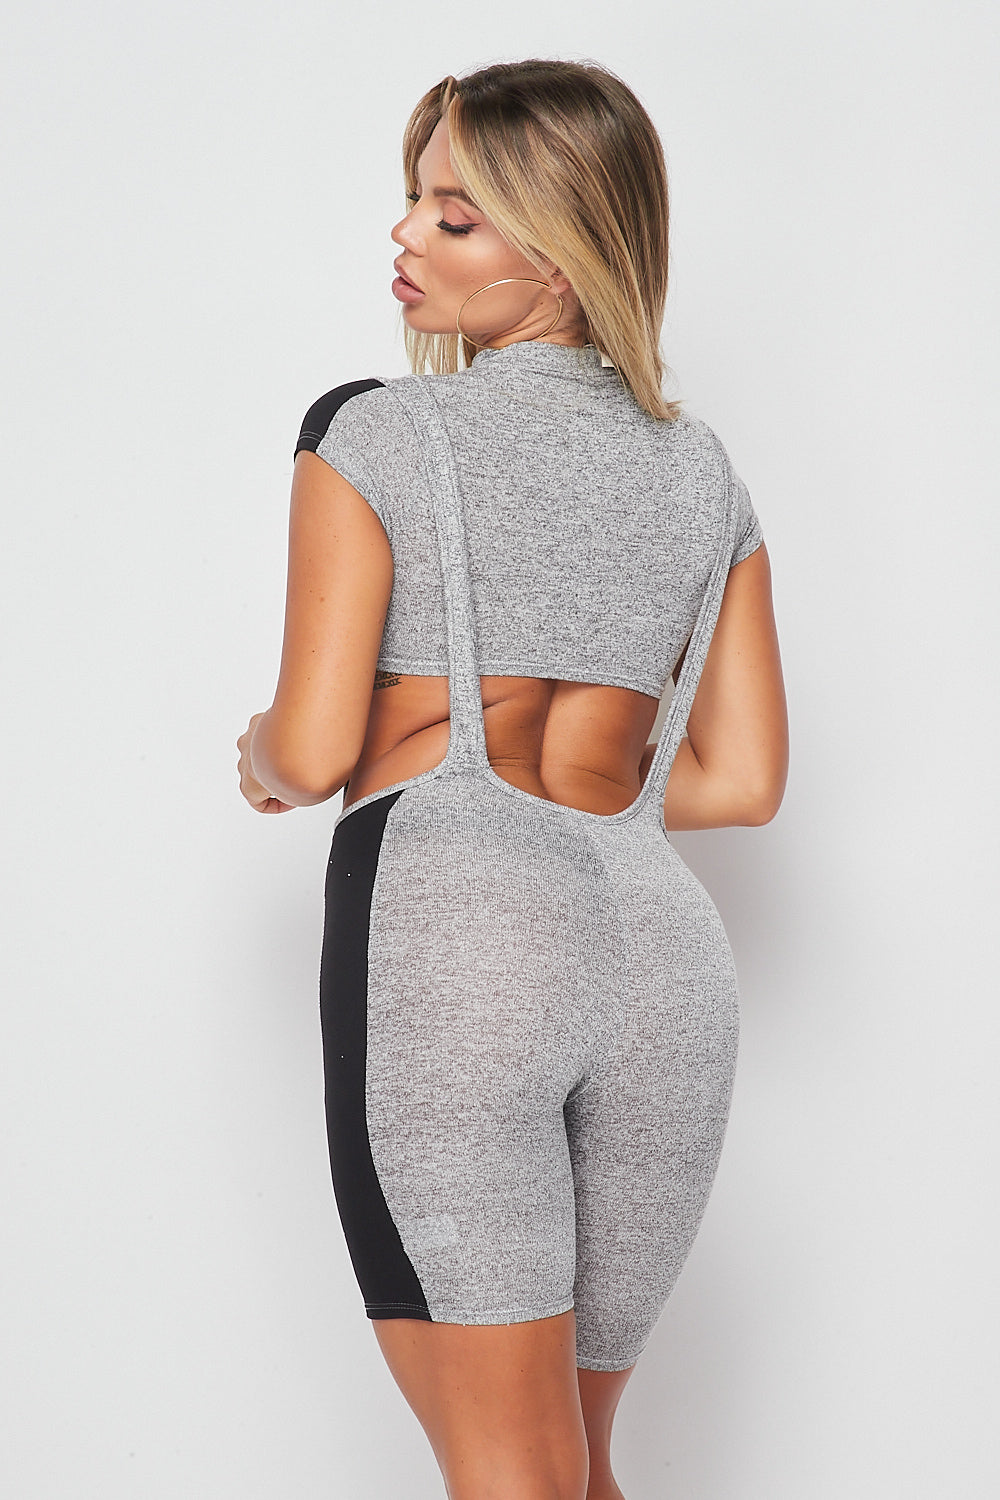 Sexy 2pc Romper set-GREY/BLACK - Fashion House USA